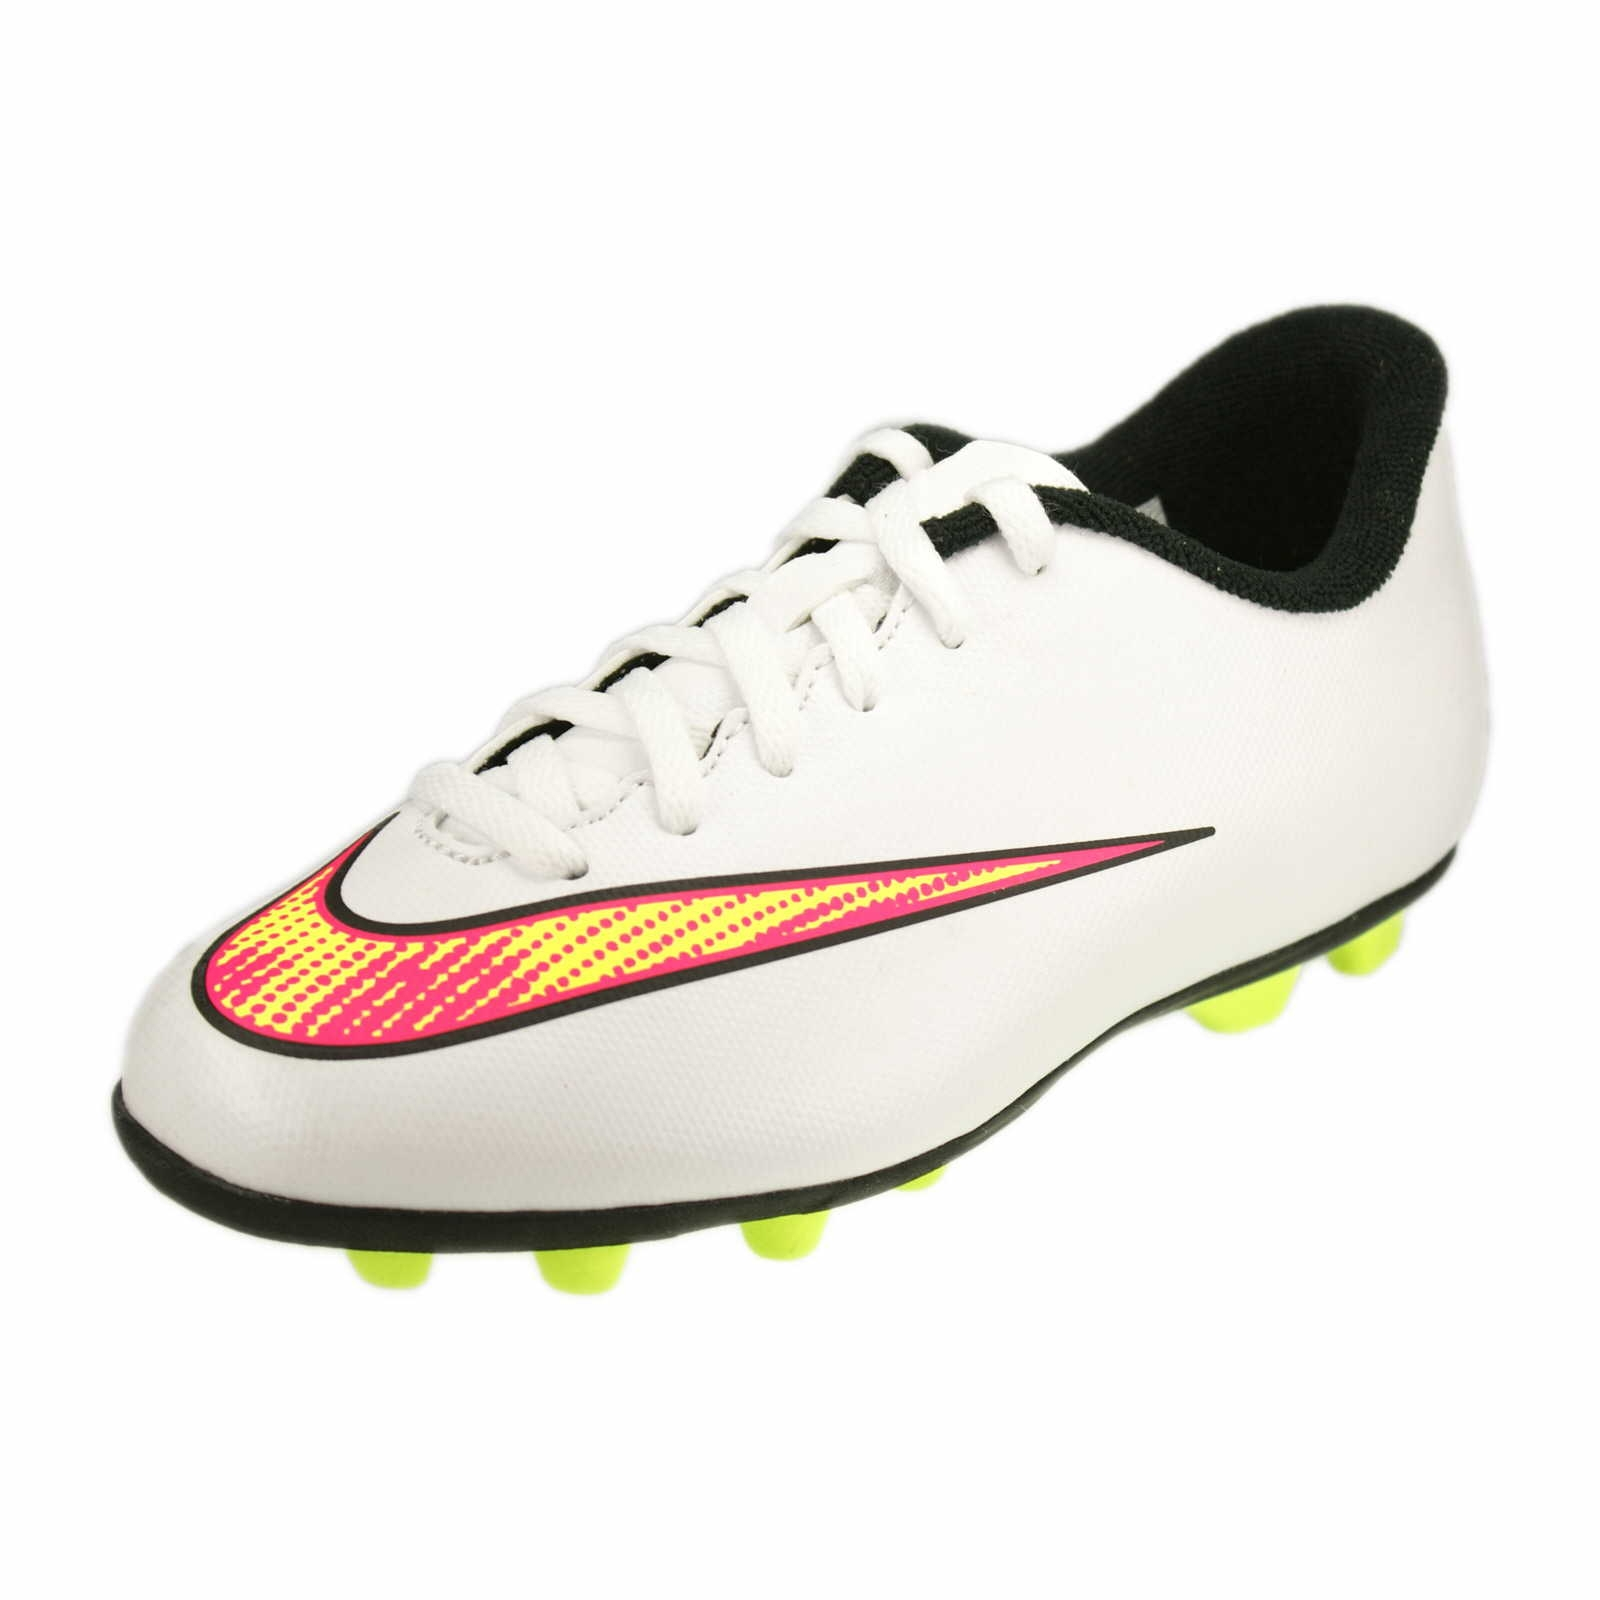 nike fu ball jr mercurial vortex in weiss schuhparadies. Black Bedroom Furniture Sets. Home Design Ideas